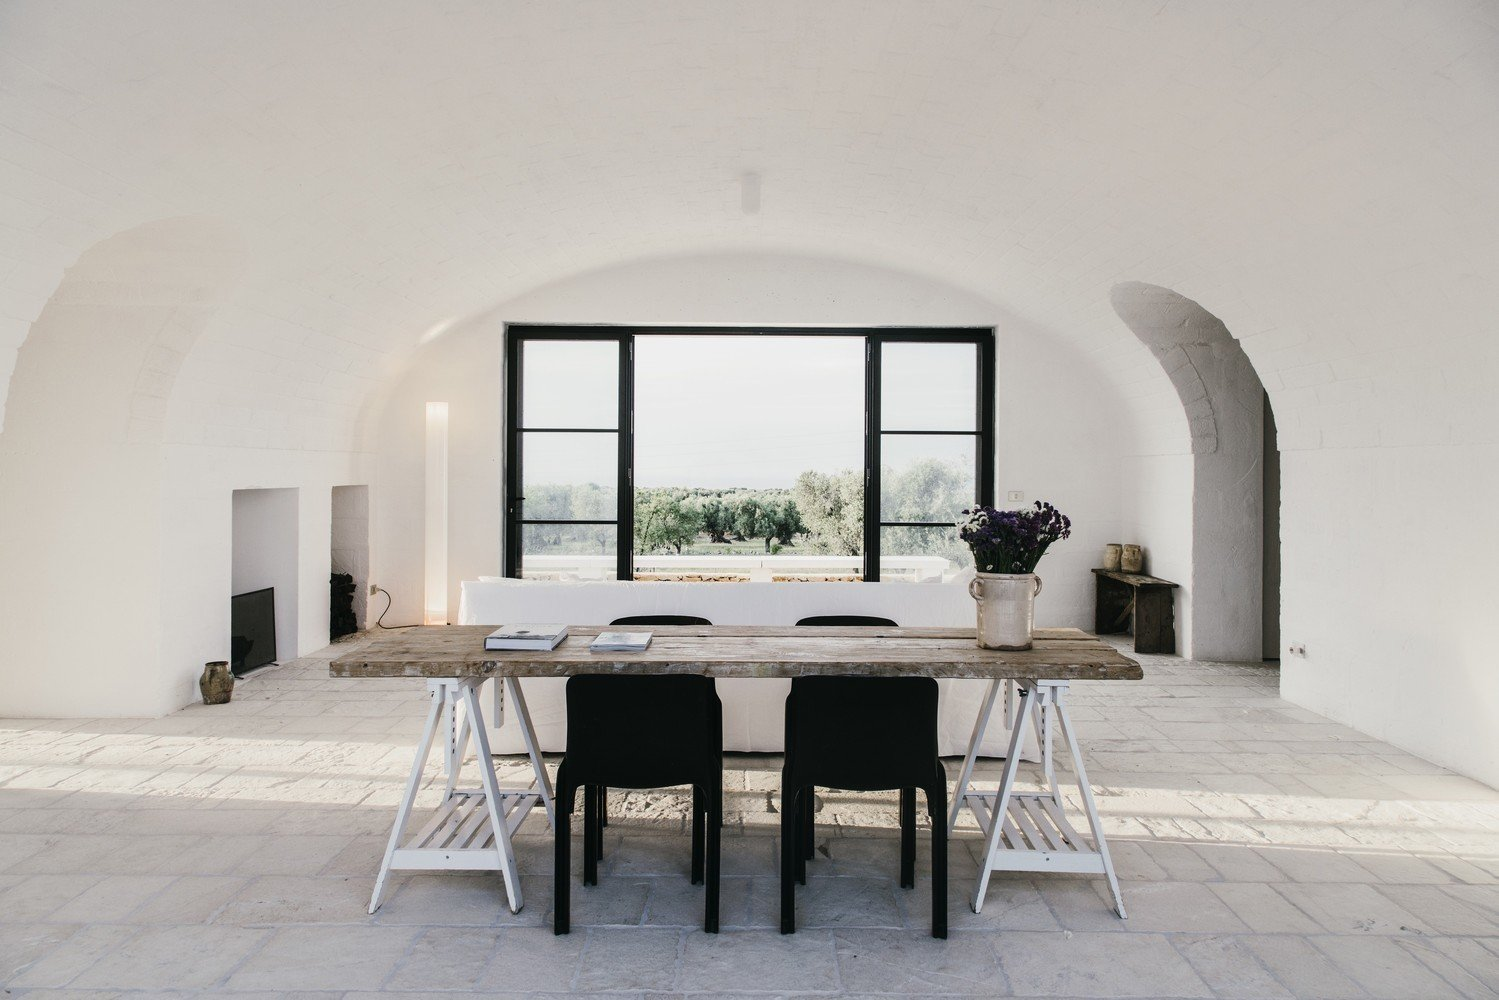 Dining Room, Chair, Table, and Limestone Floor  Photo 3 of 11 in 10 Exquisitely Modern Homes in Italy from Masseria Moroseta by Andrew Trotter